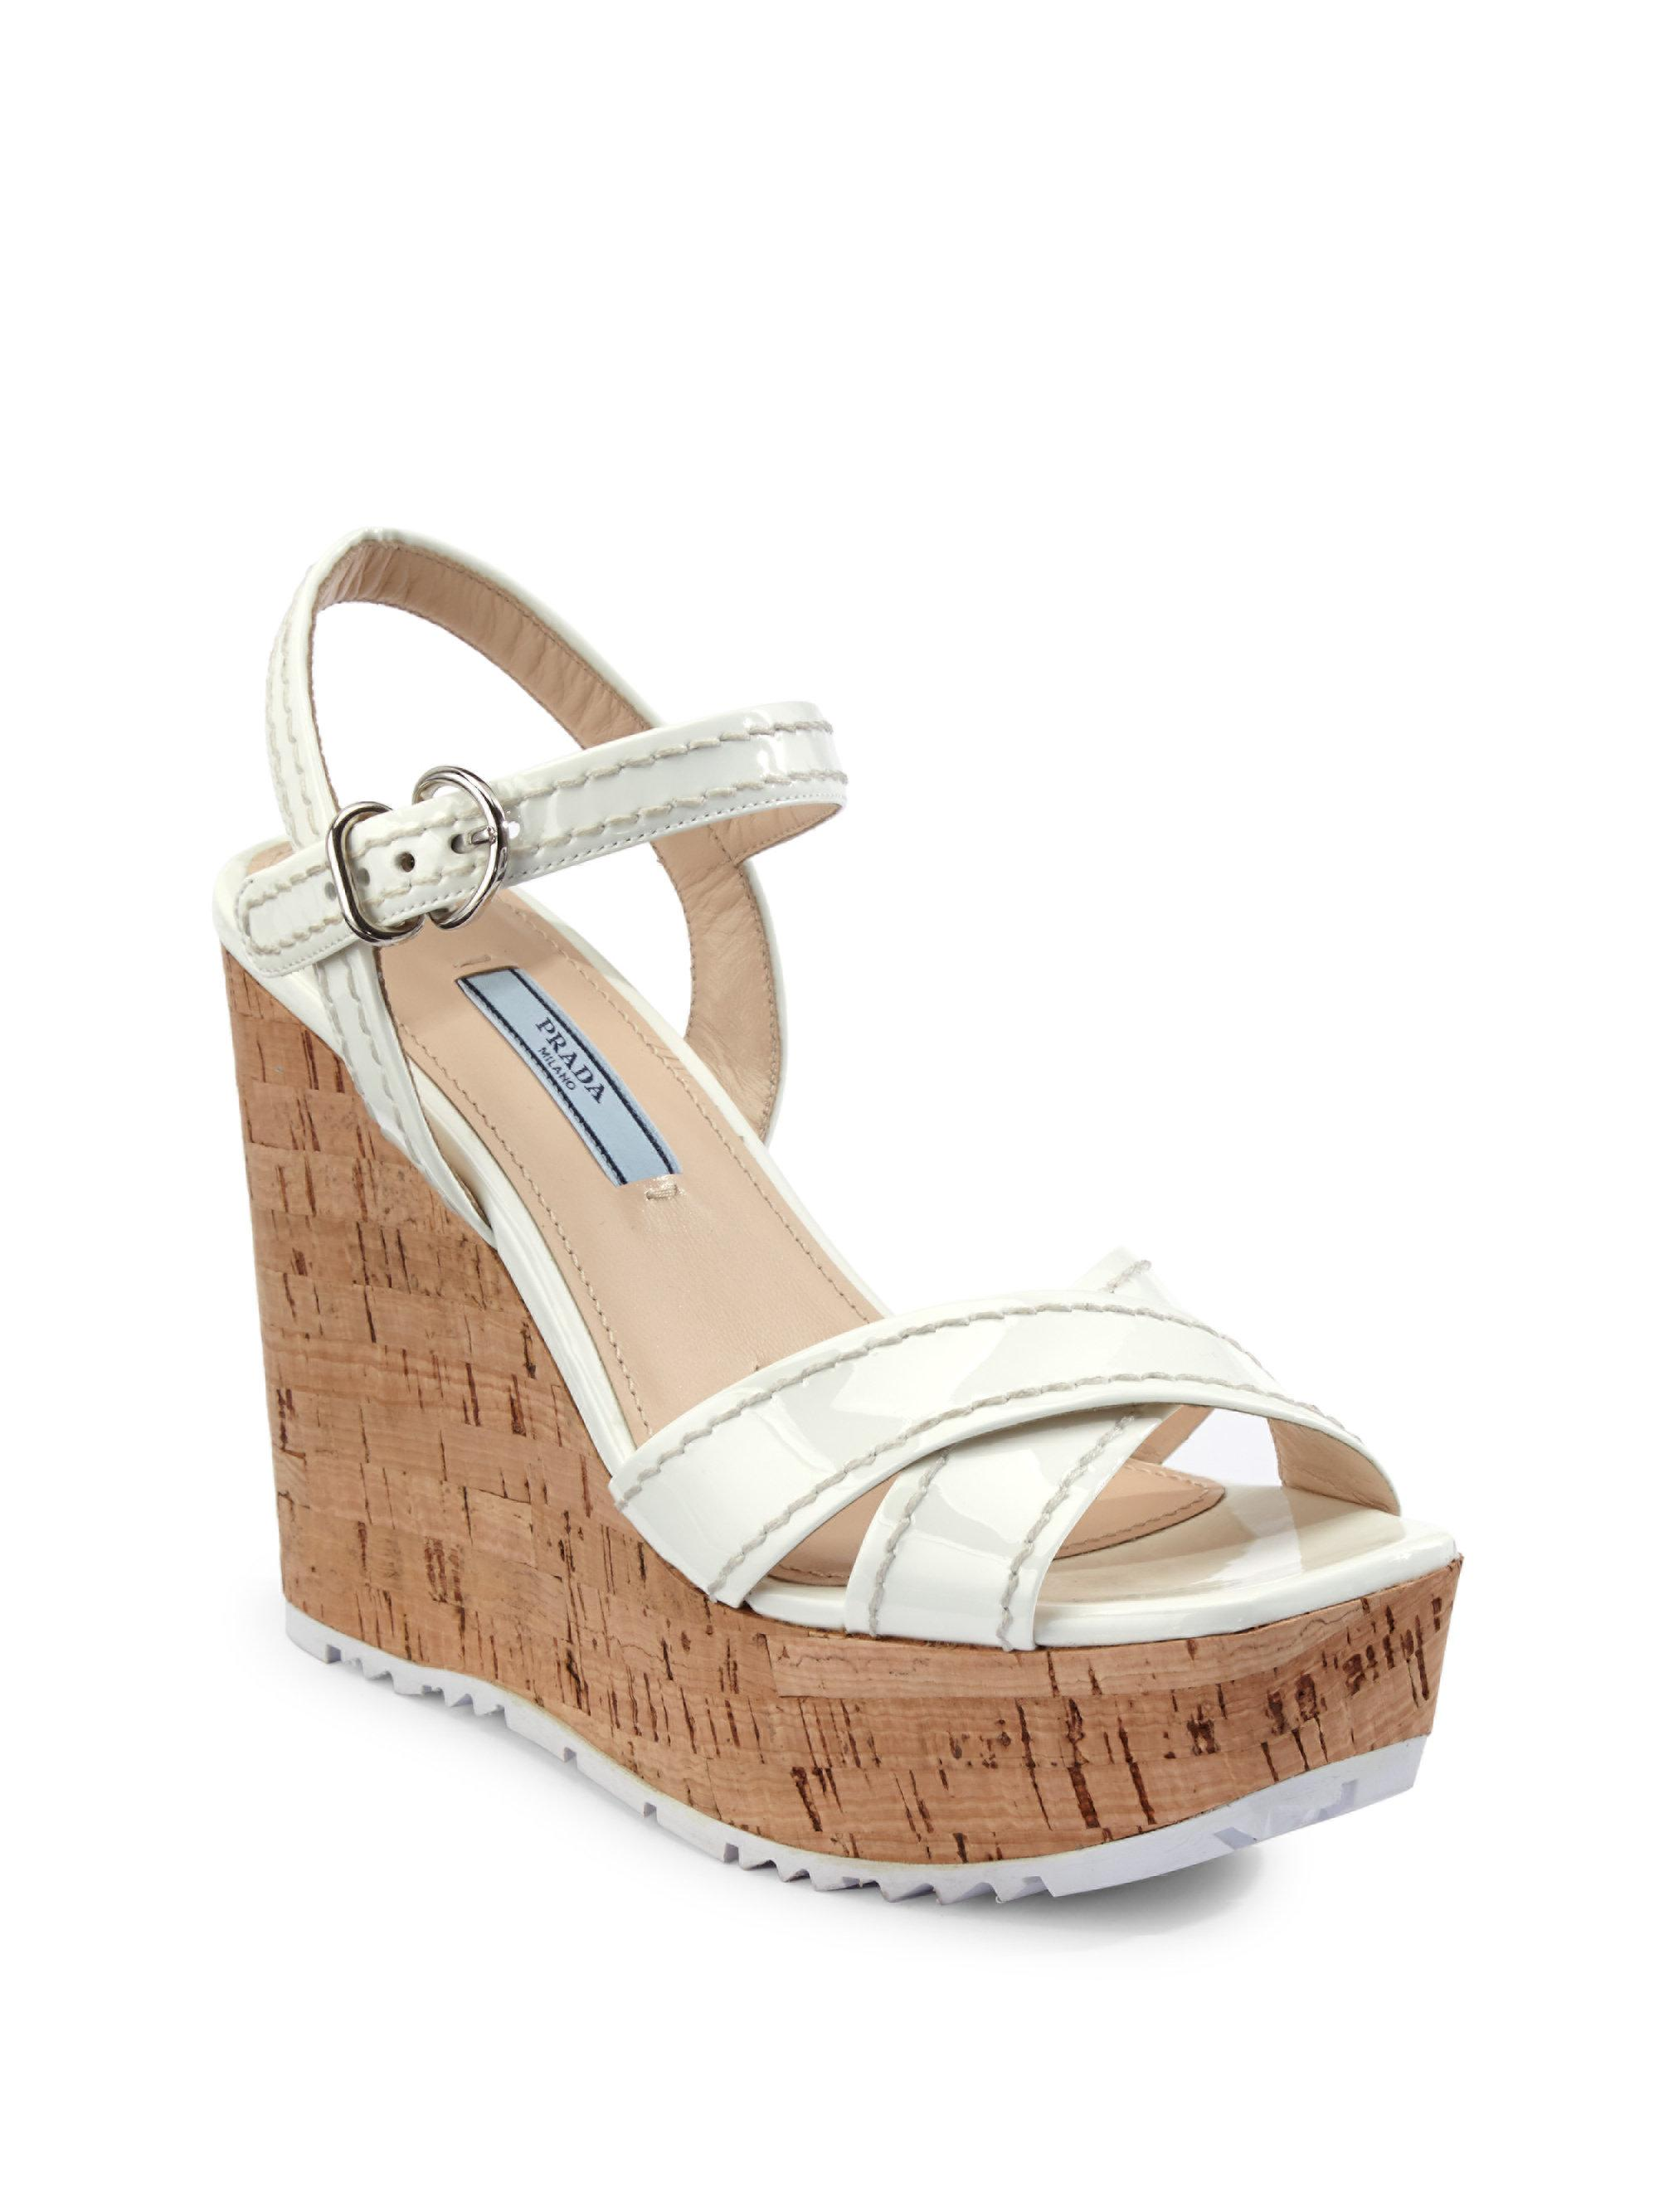 885af4479af Lyst - Prada Leather Platform Wedge Sandals in White